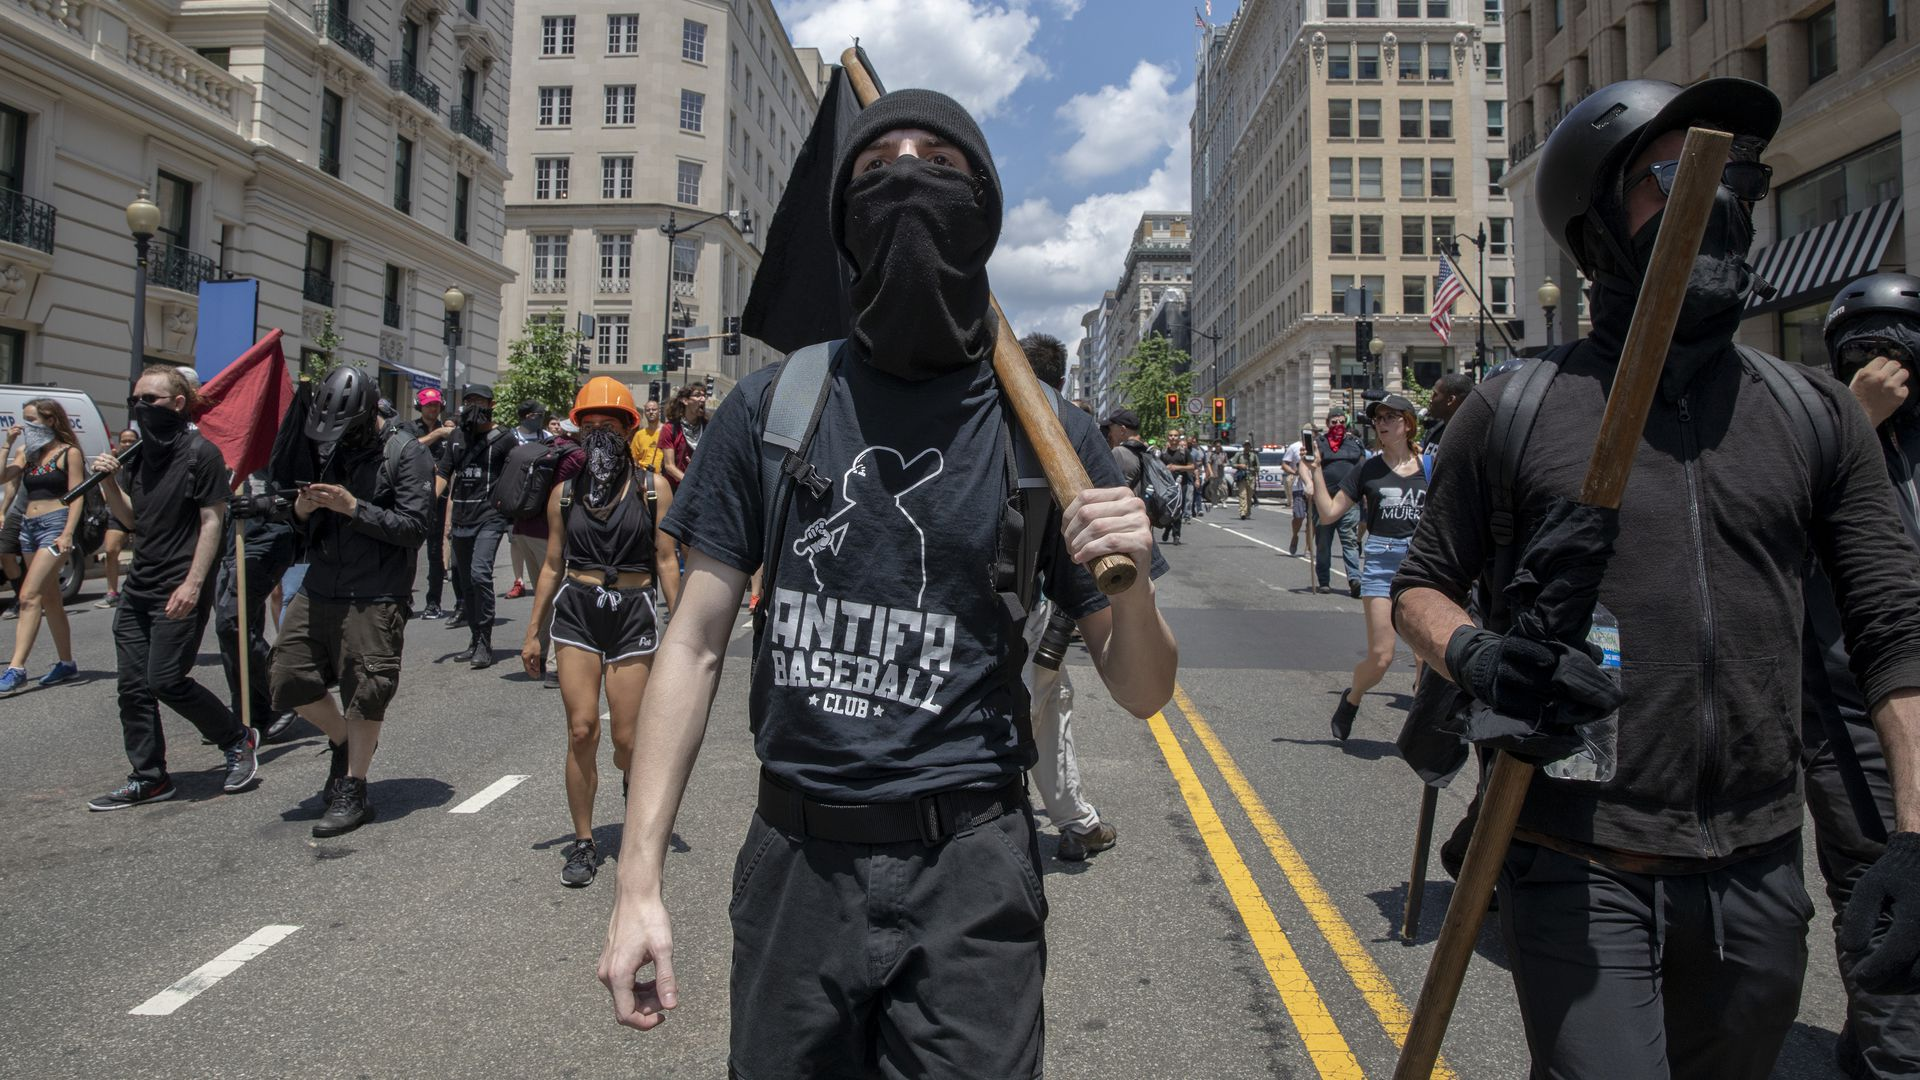 This image shows two black-clad antifa members carrying black flags down the street with their faces covered. other members follow behind them.